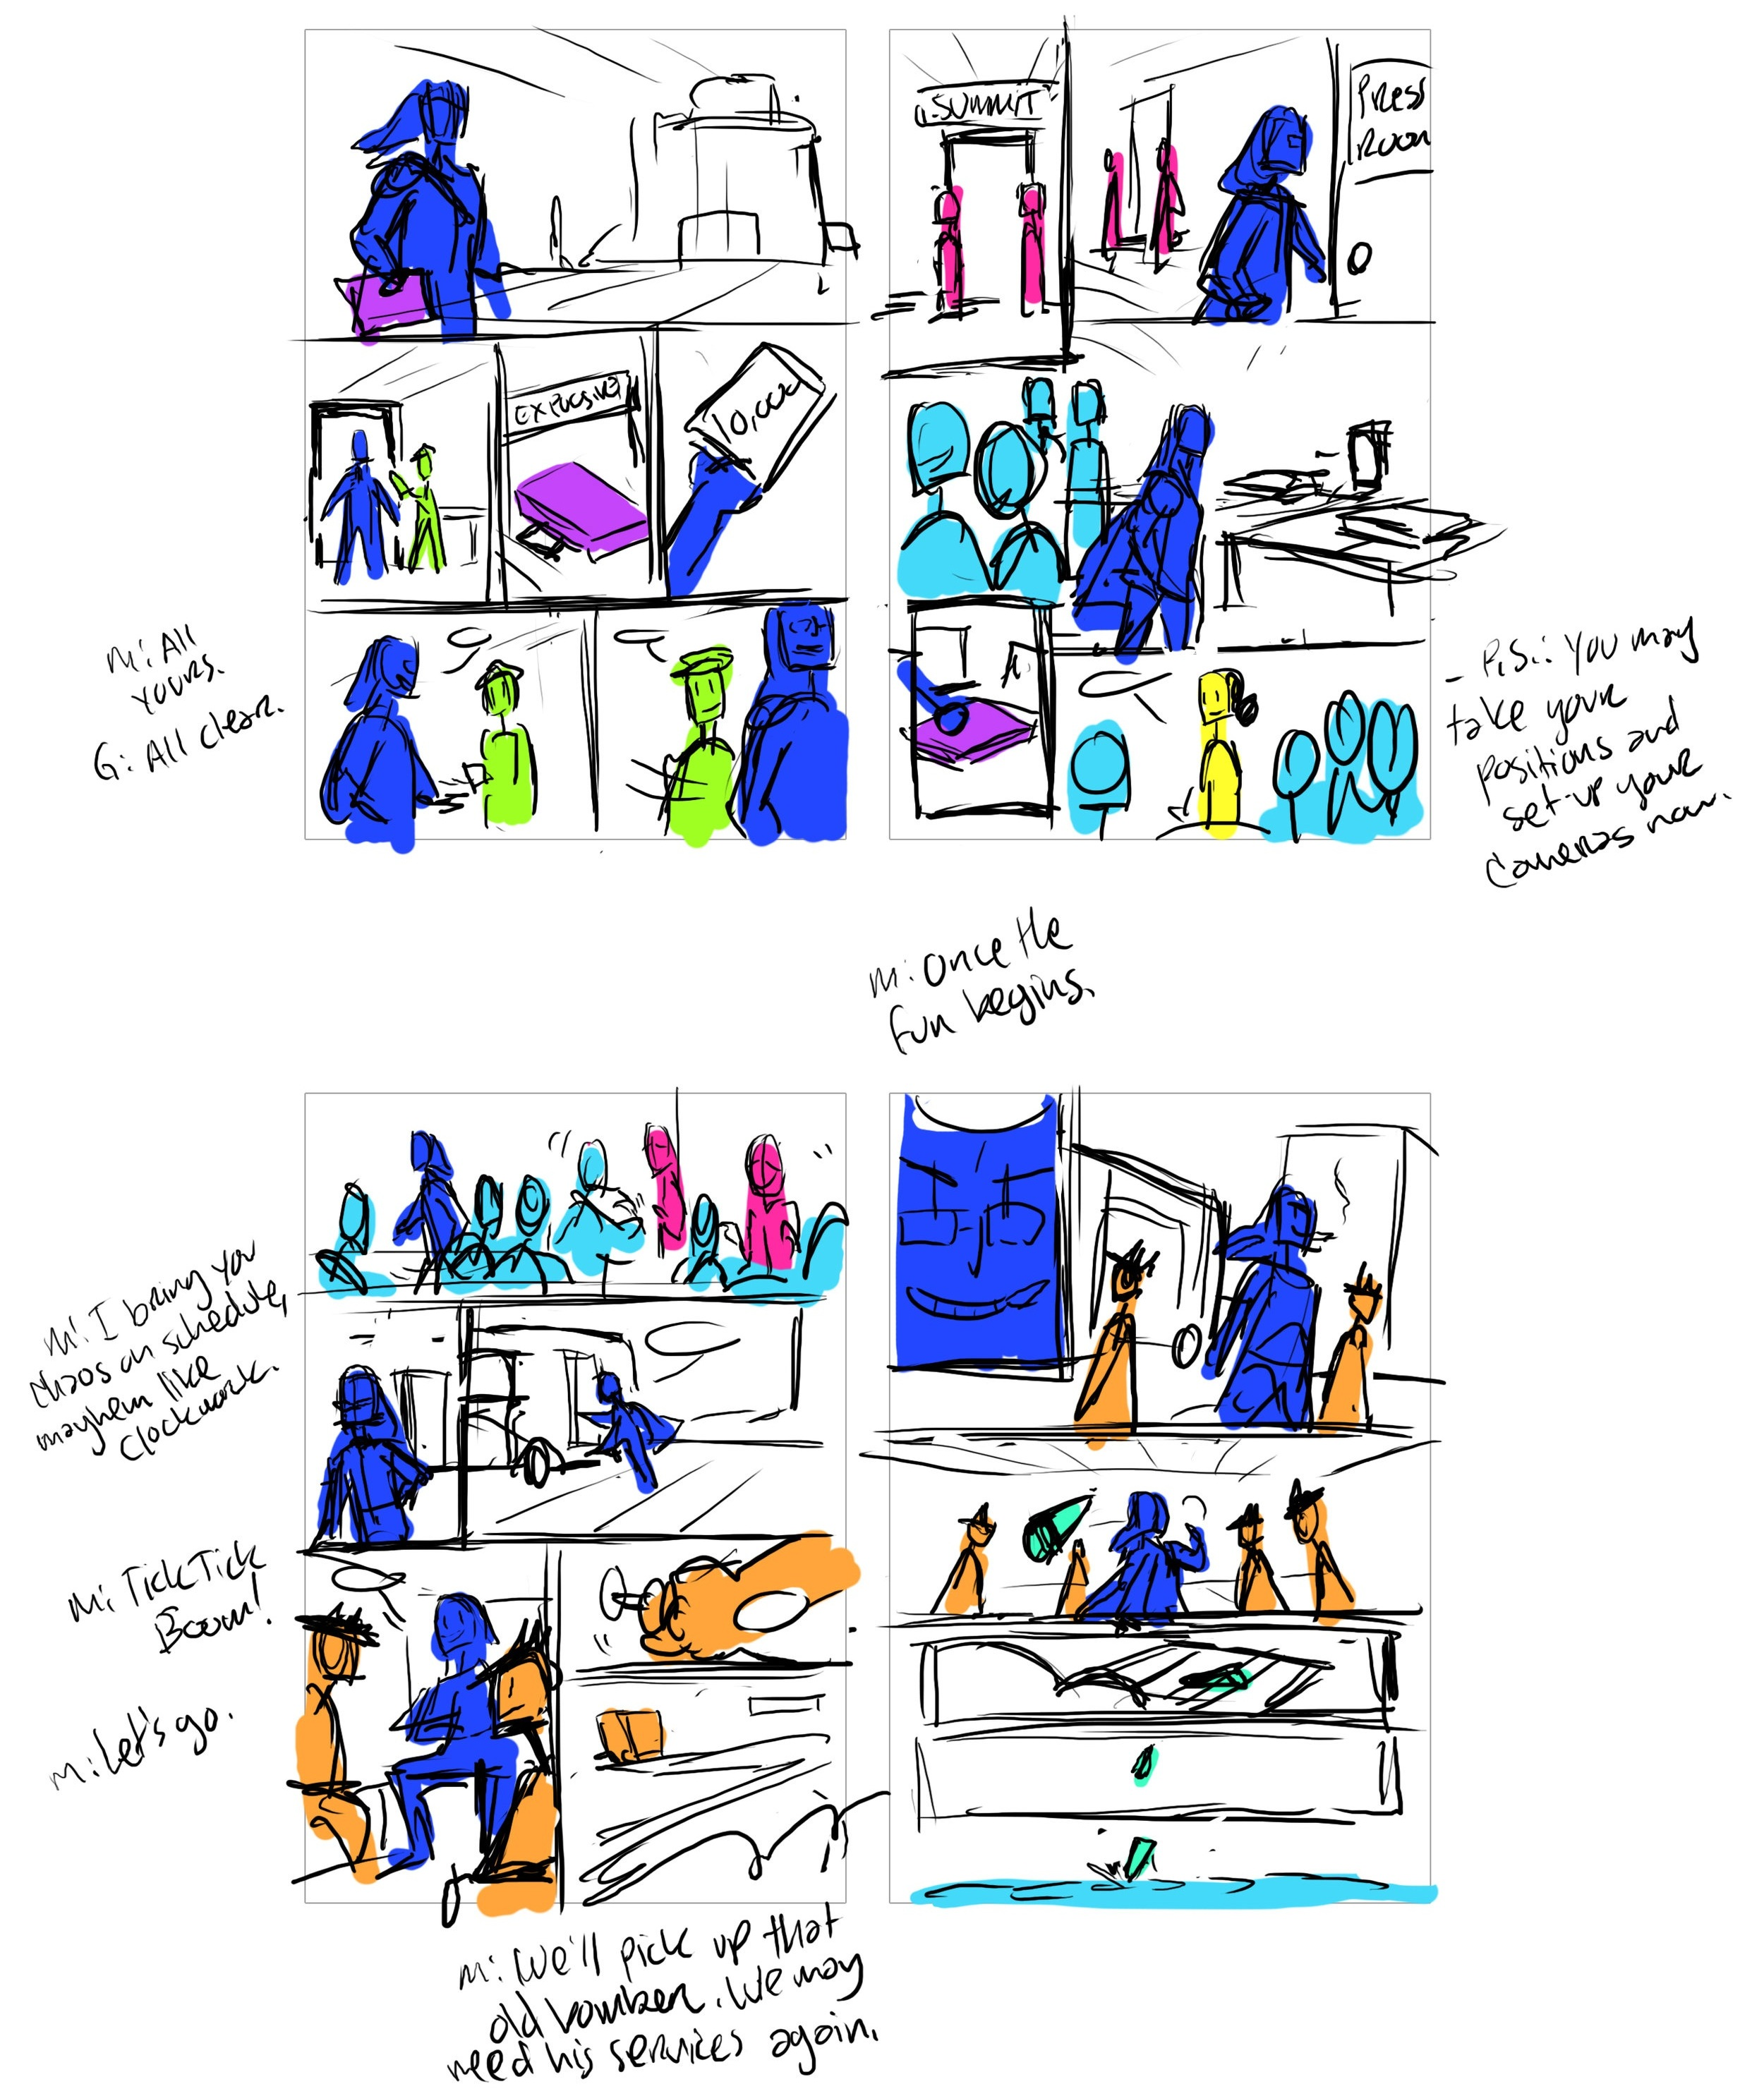 Thumbnail sketches of pages 13-16